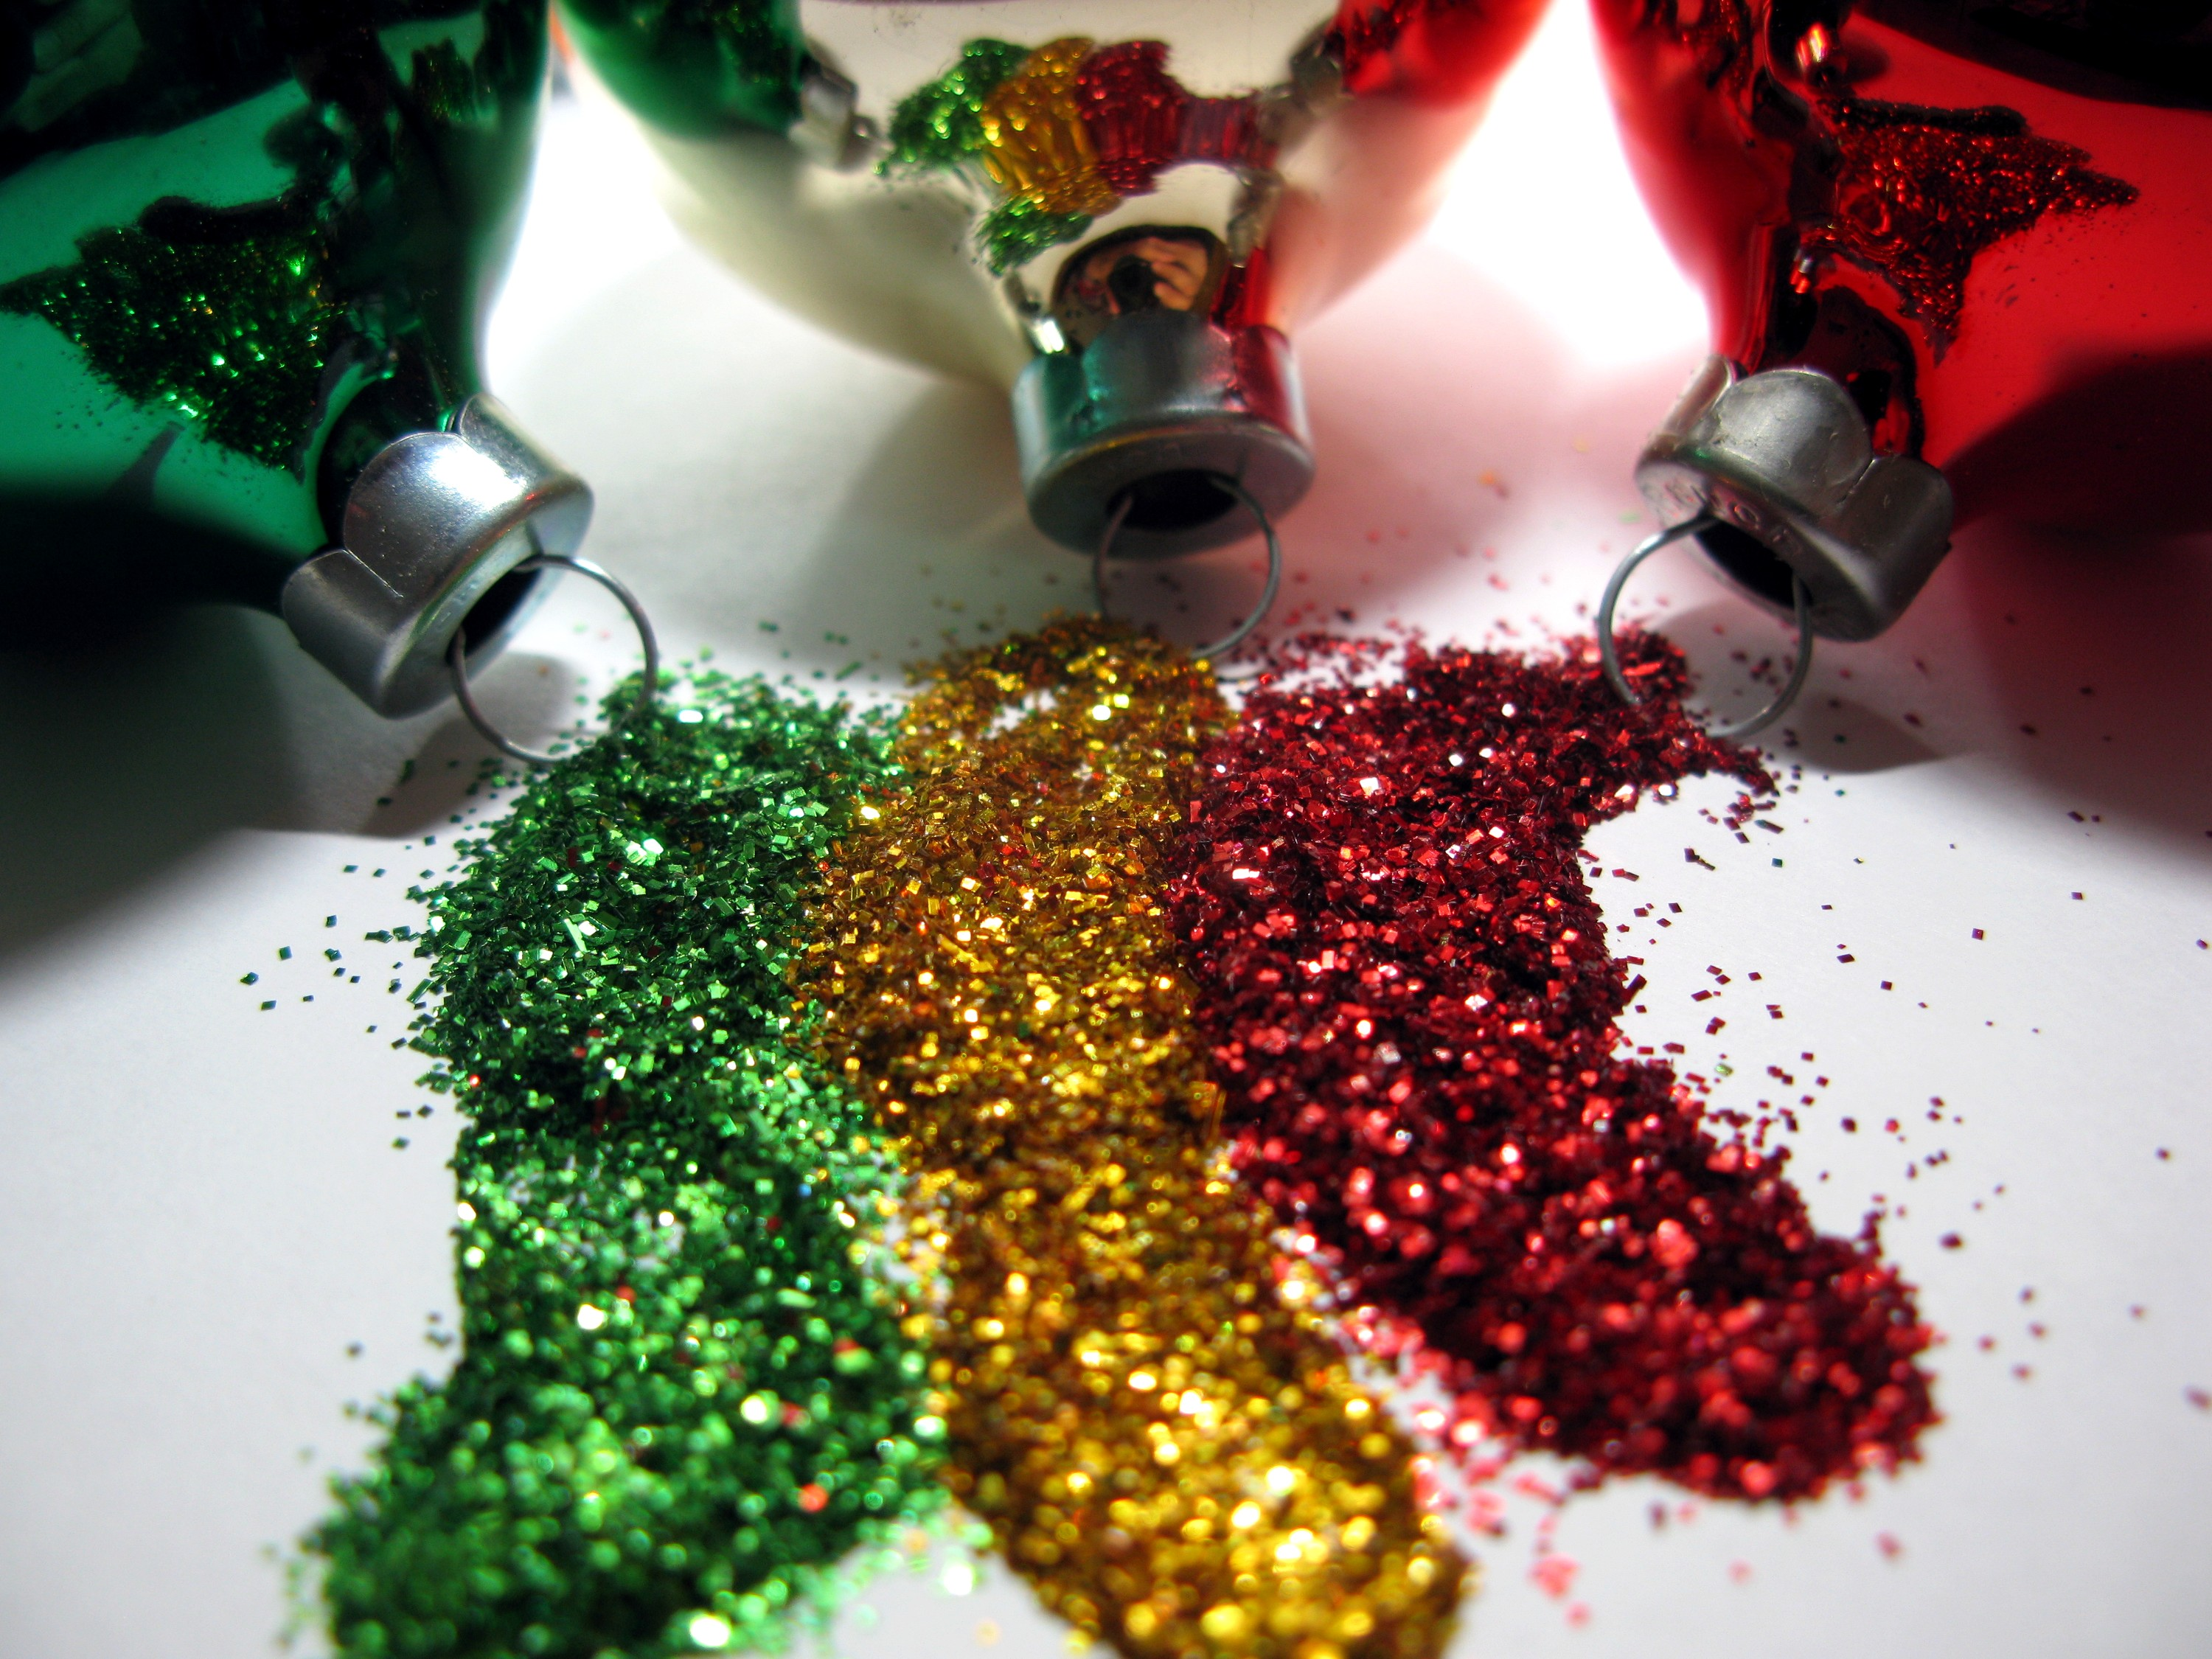 Three Christmas ornaments spilling glitter in green, gold, and red.